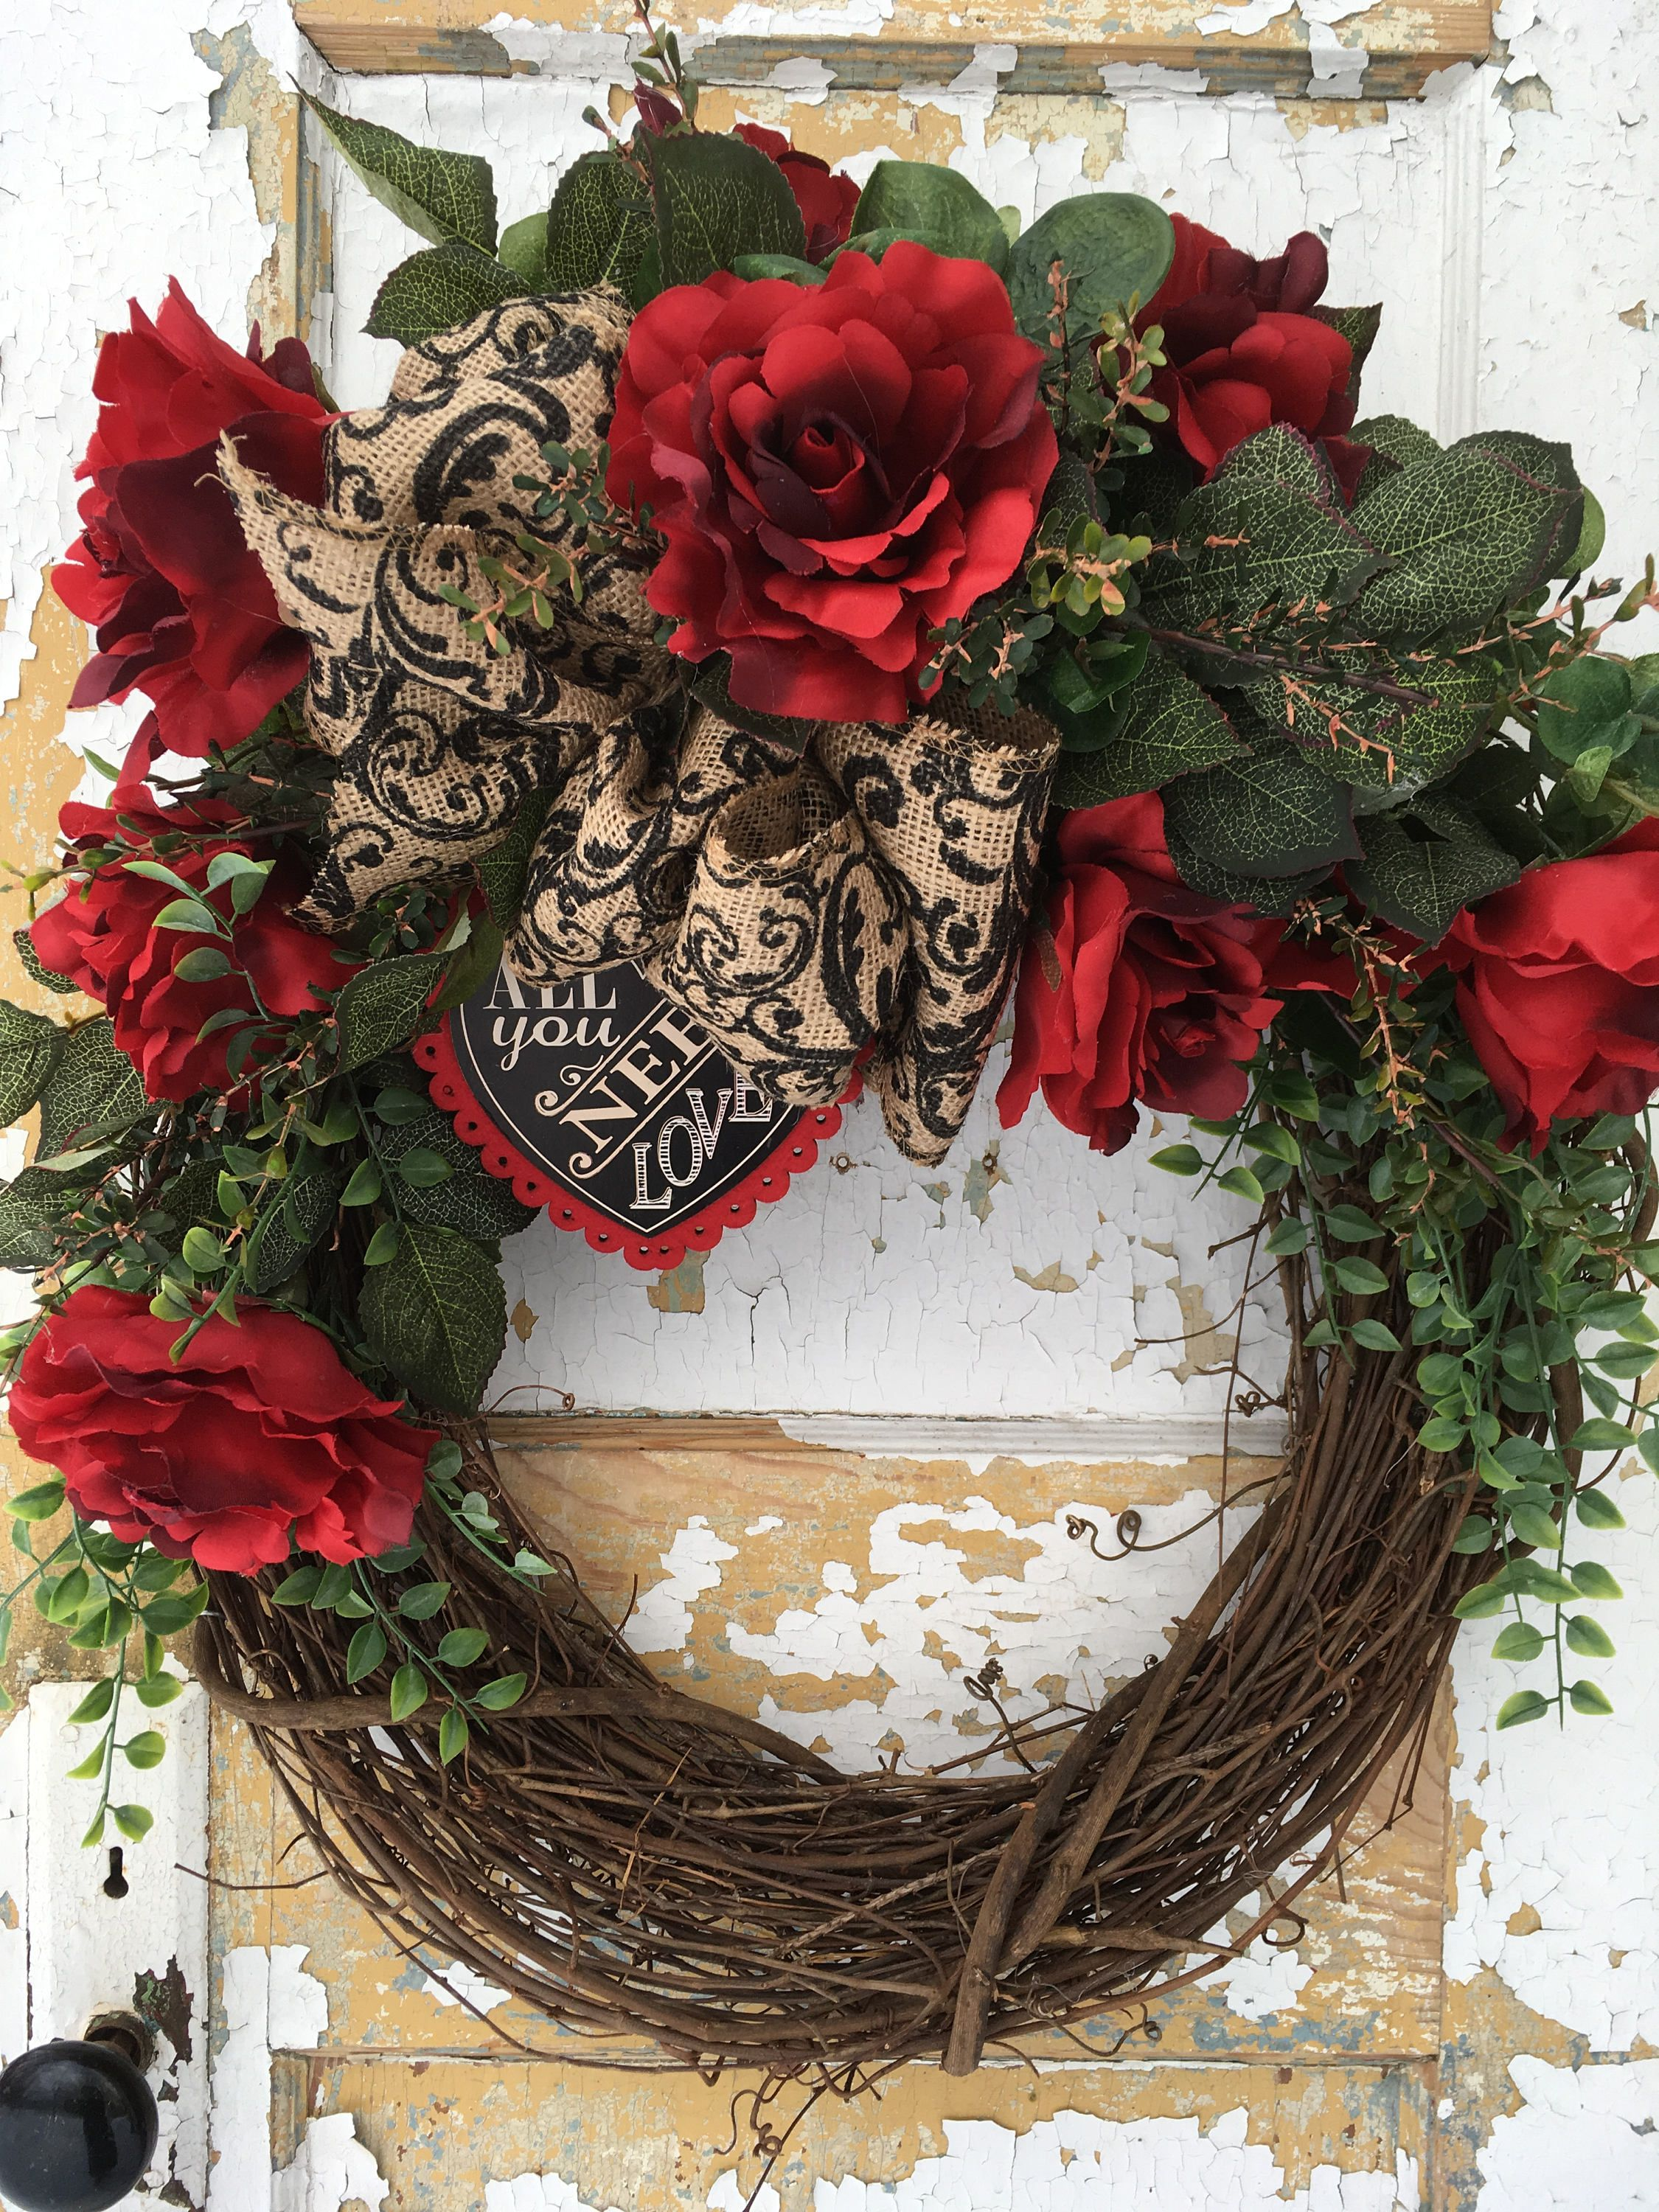 Valentine Wreath Red Rose Wreath Valentine S Day Wreath Valentine Front Door Wreath By Flowerpowerohi Valentine Day Wreaths Red Rose Wreath Valentine Wreath